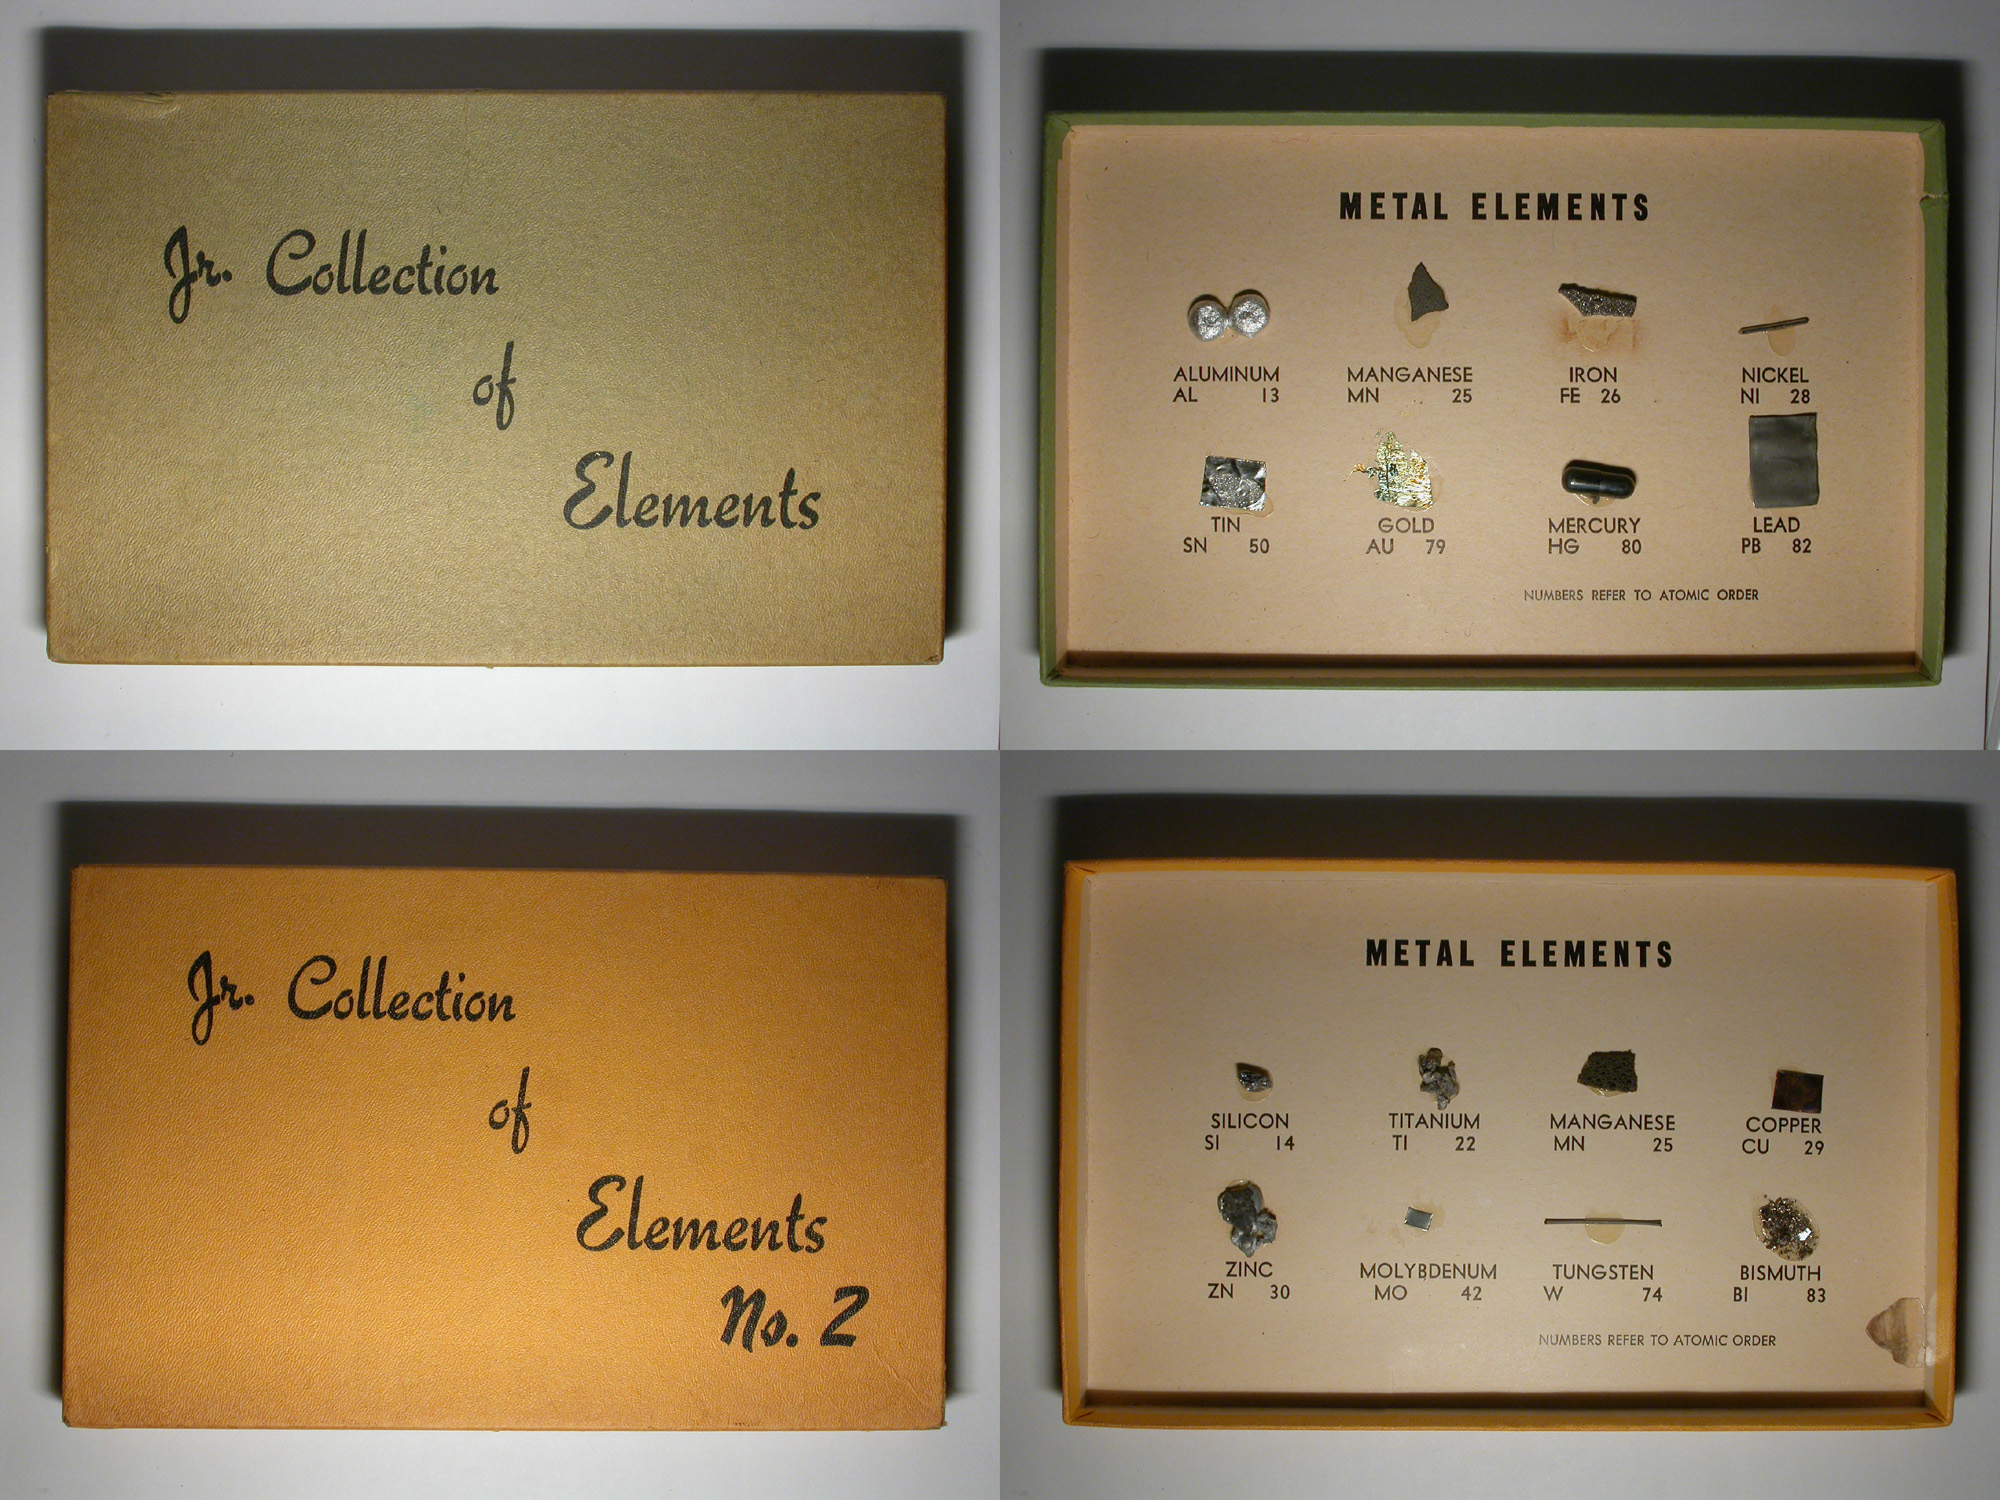 Pictures stories and facts about the element gold in the jr collection of elements buycottarizona